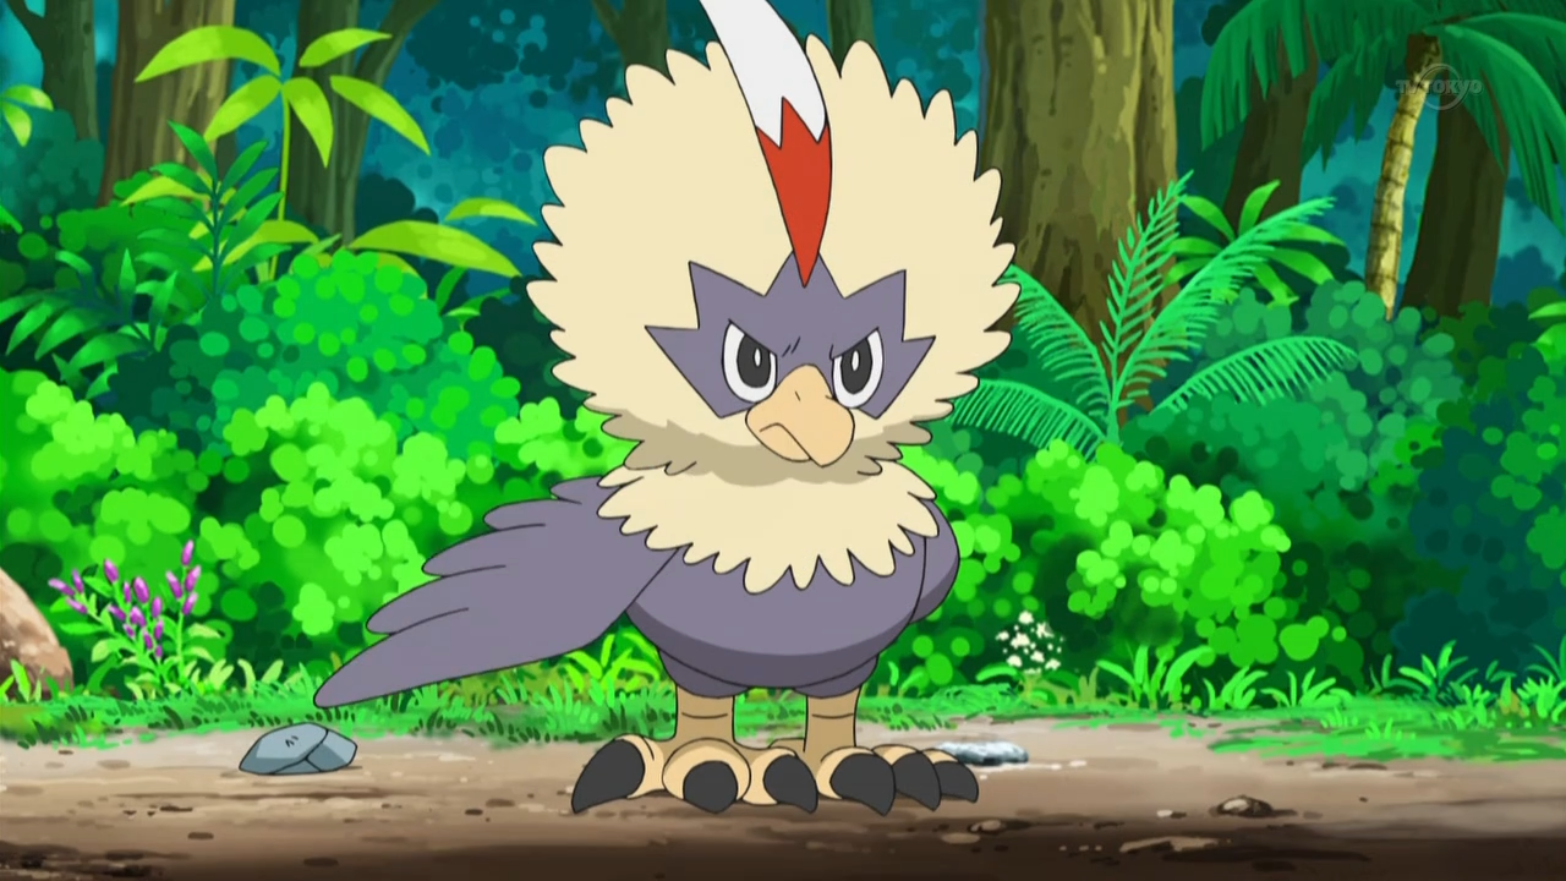 Rufflet, along with Vullaby, were the Pokémon Layla takes care about. However, due to their differences and disagreements, Vullaby and Rufflet often fought each other. Rufflet was more kind-hearted than Vullaby.